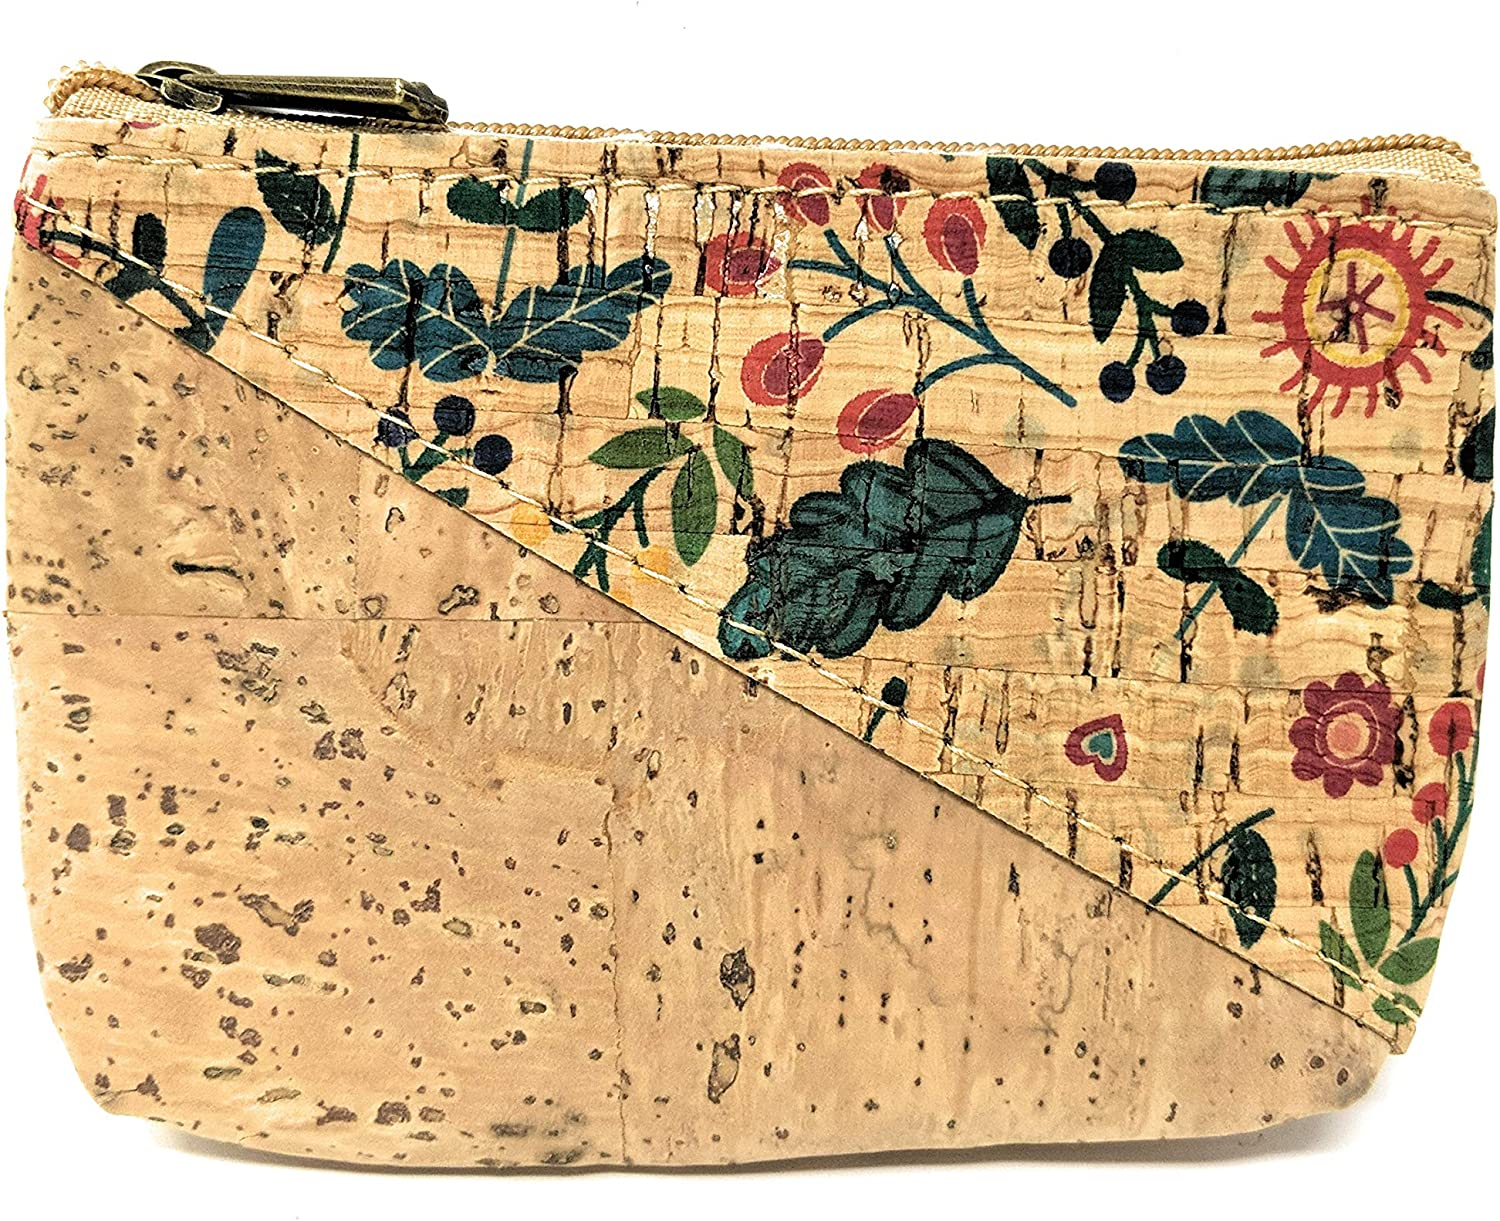 Cork Coin Pouch Change Purse for Women [2-Pack] - Handmade in Portugal - Vegan & PETA-Approved